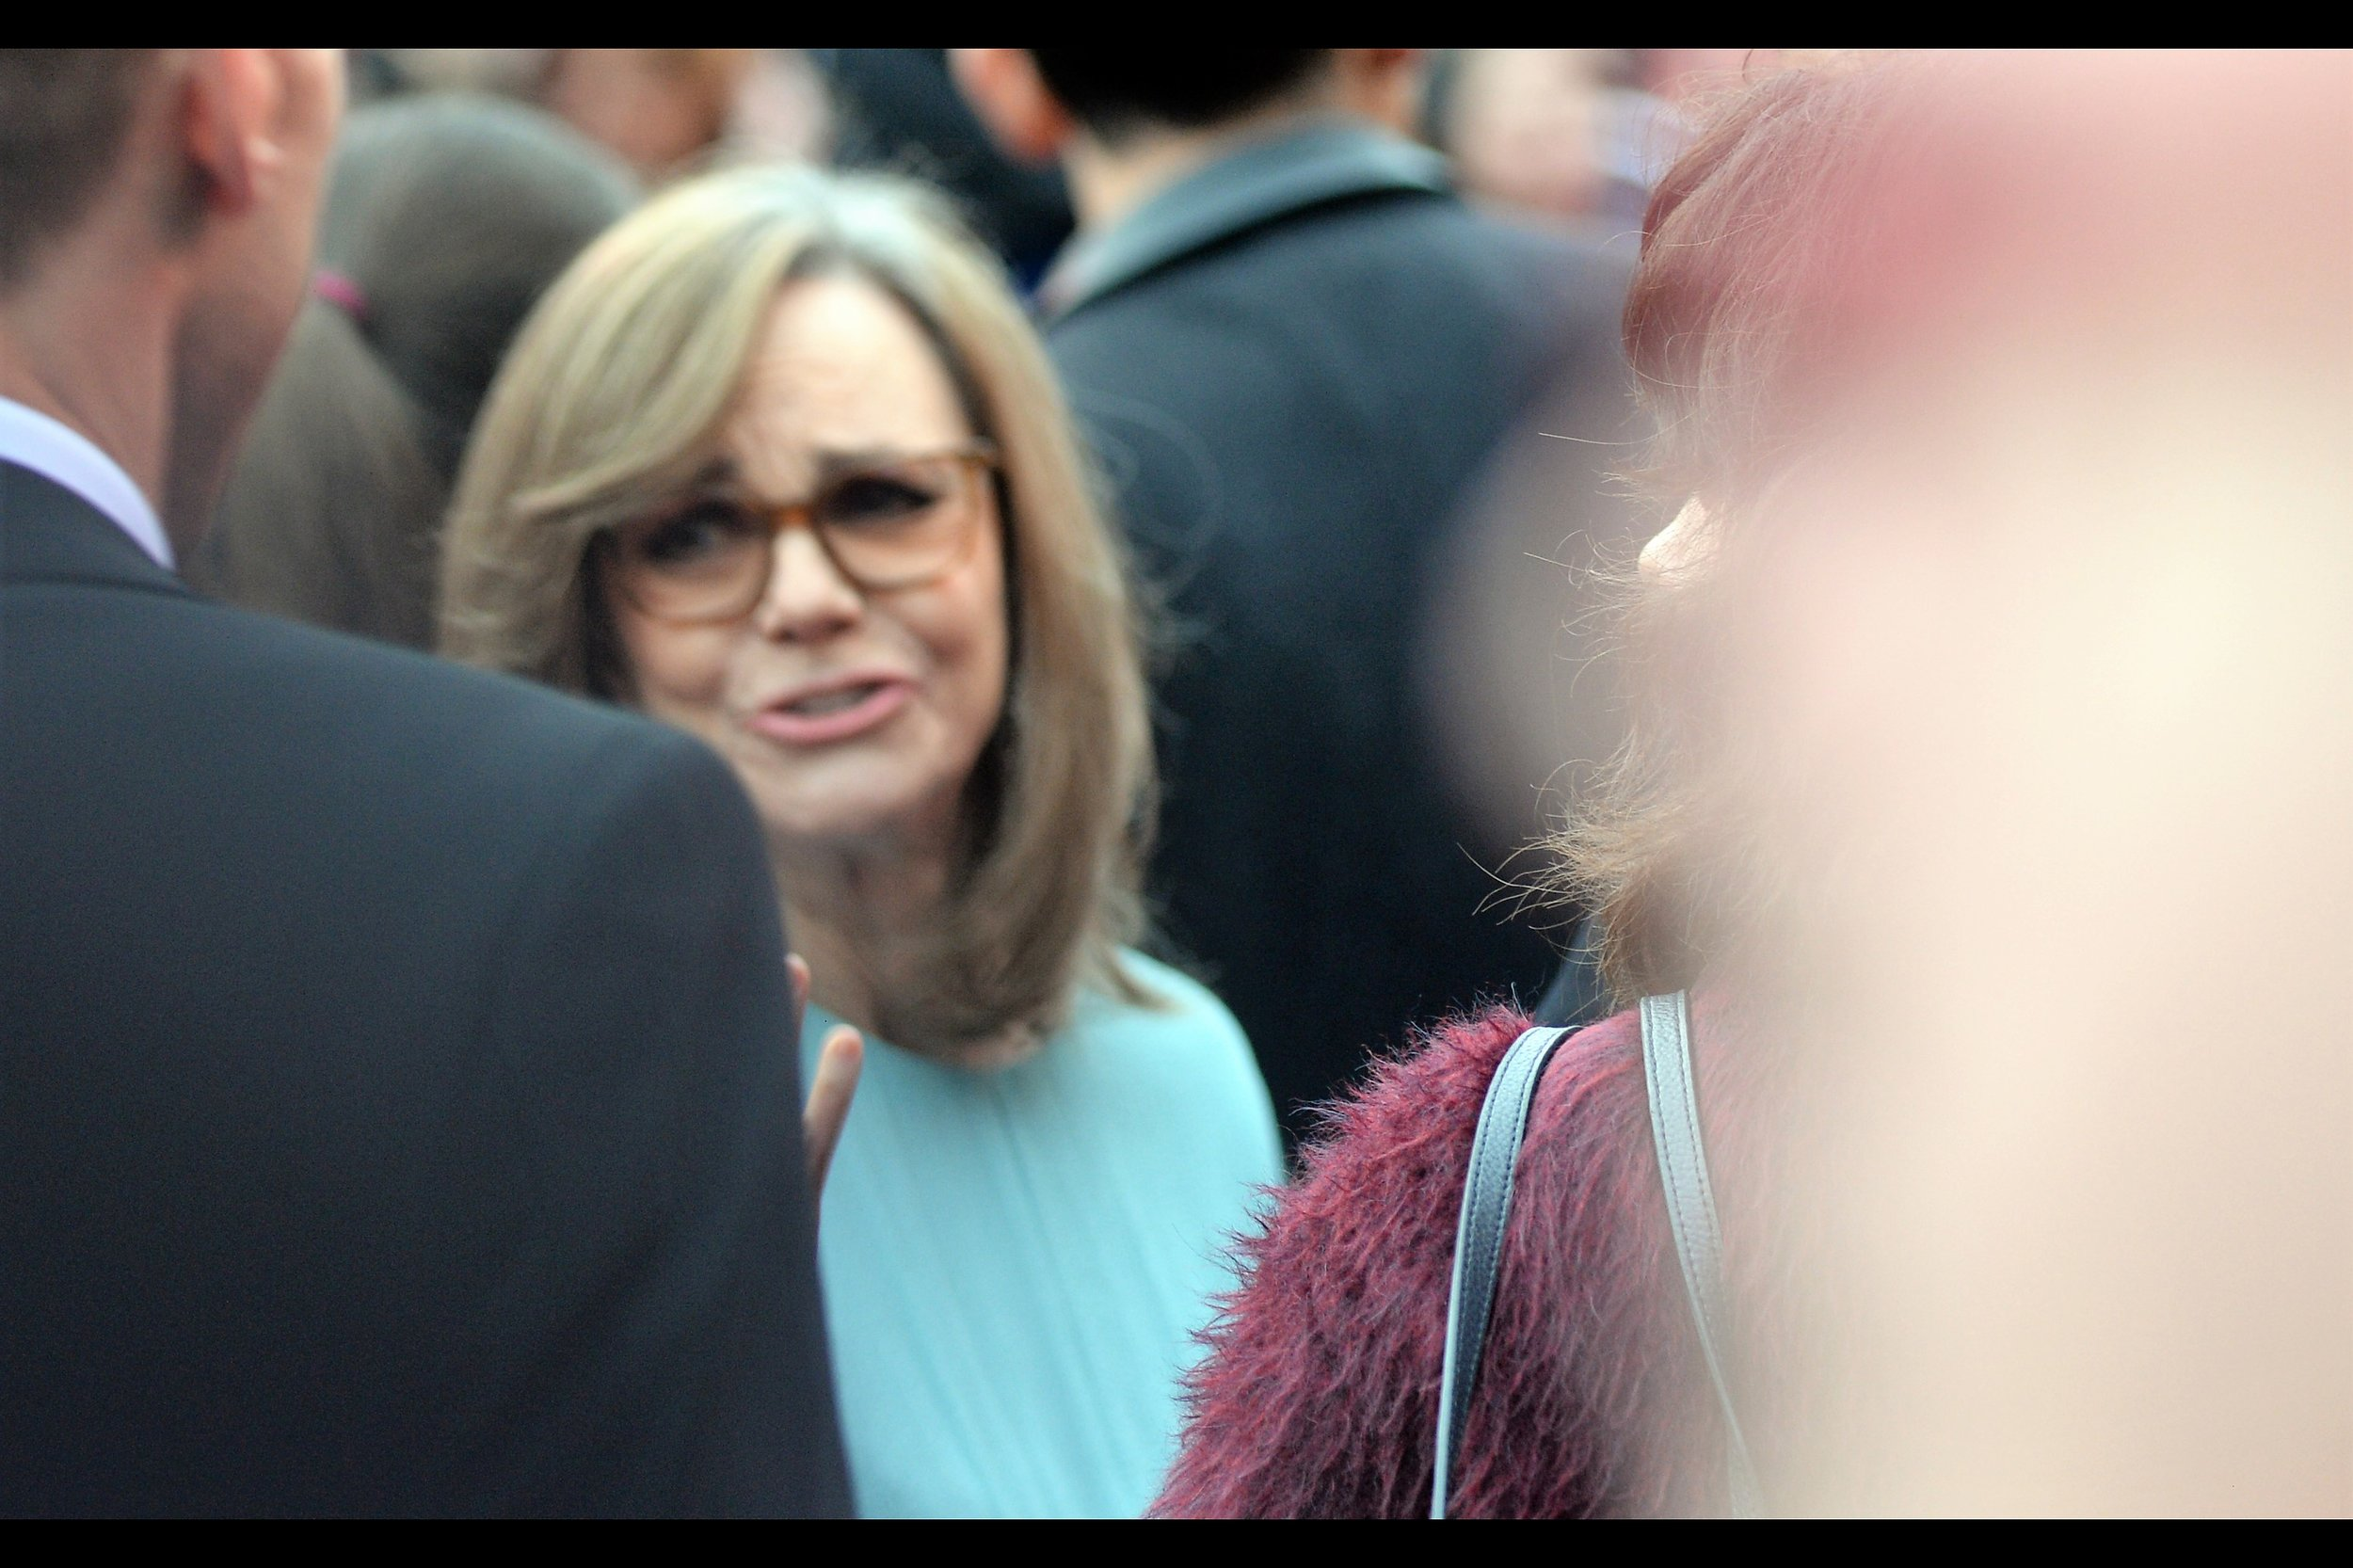 Unfortunately, one frame later the blurred head on the right moved left and blocked Sally Field just as she would have been in focus. Argh.